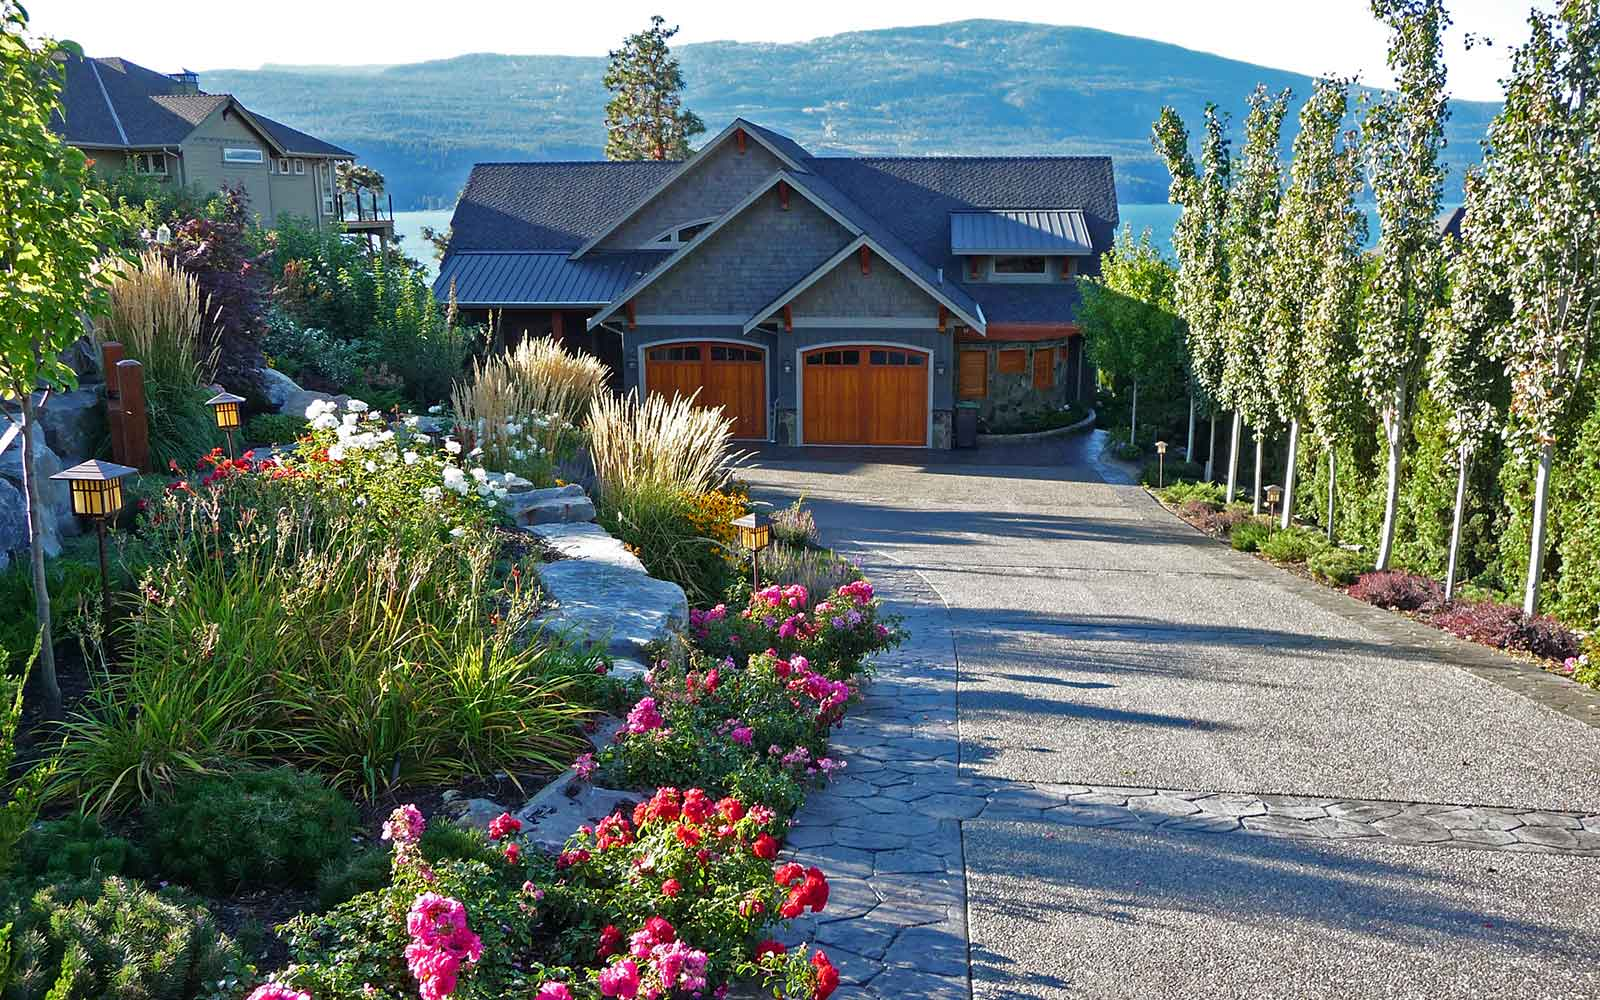 kelowna-lake-house_17.jpg